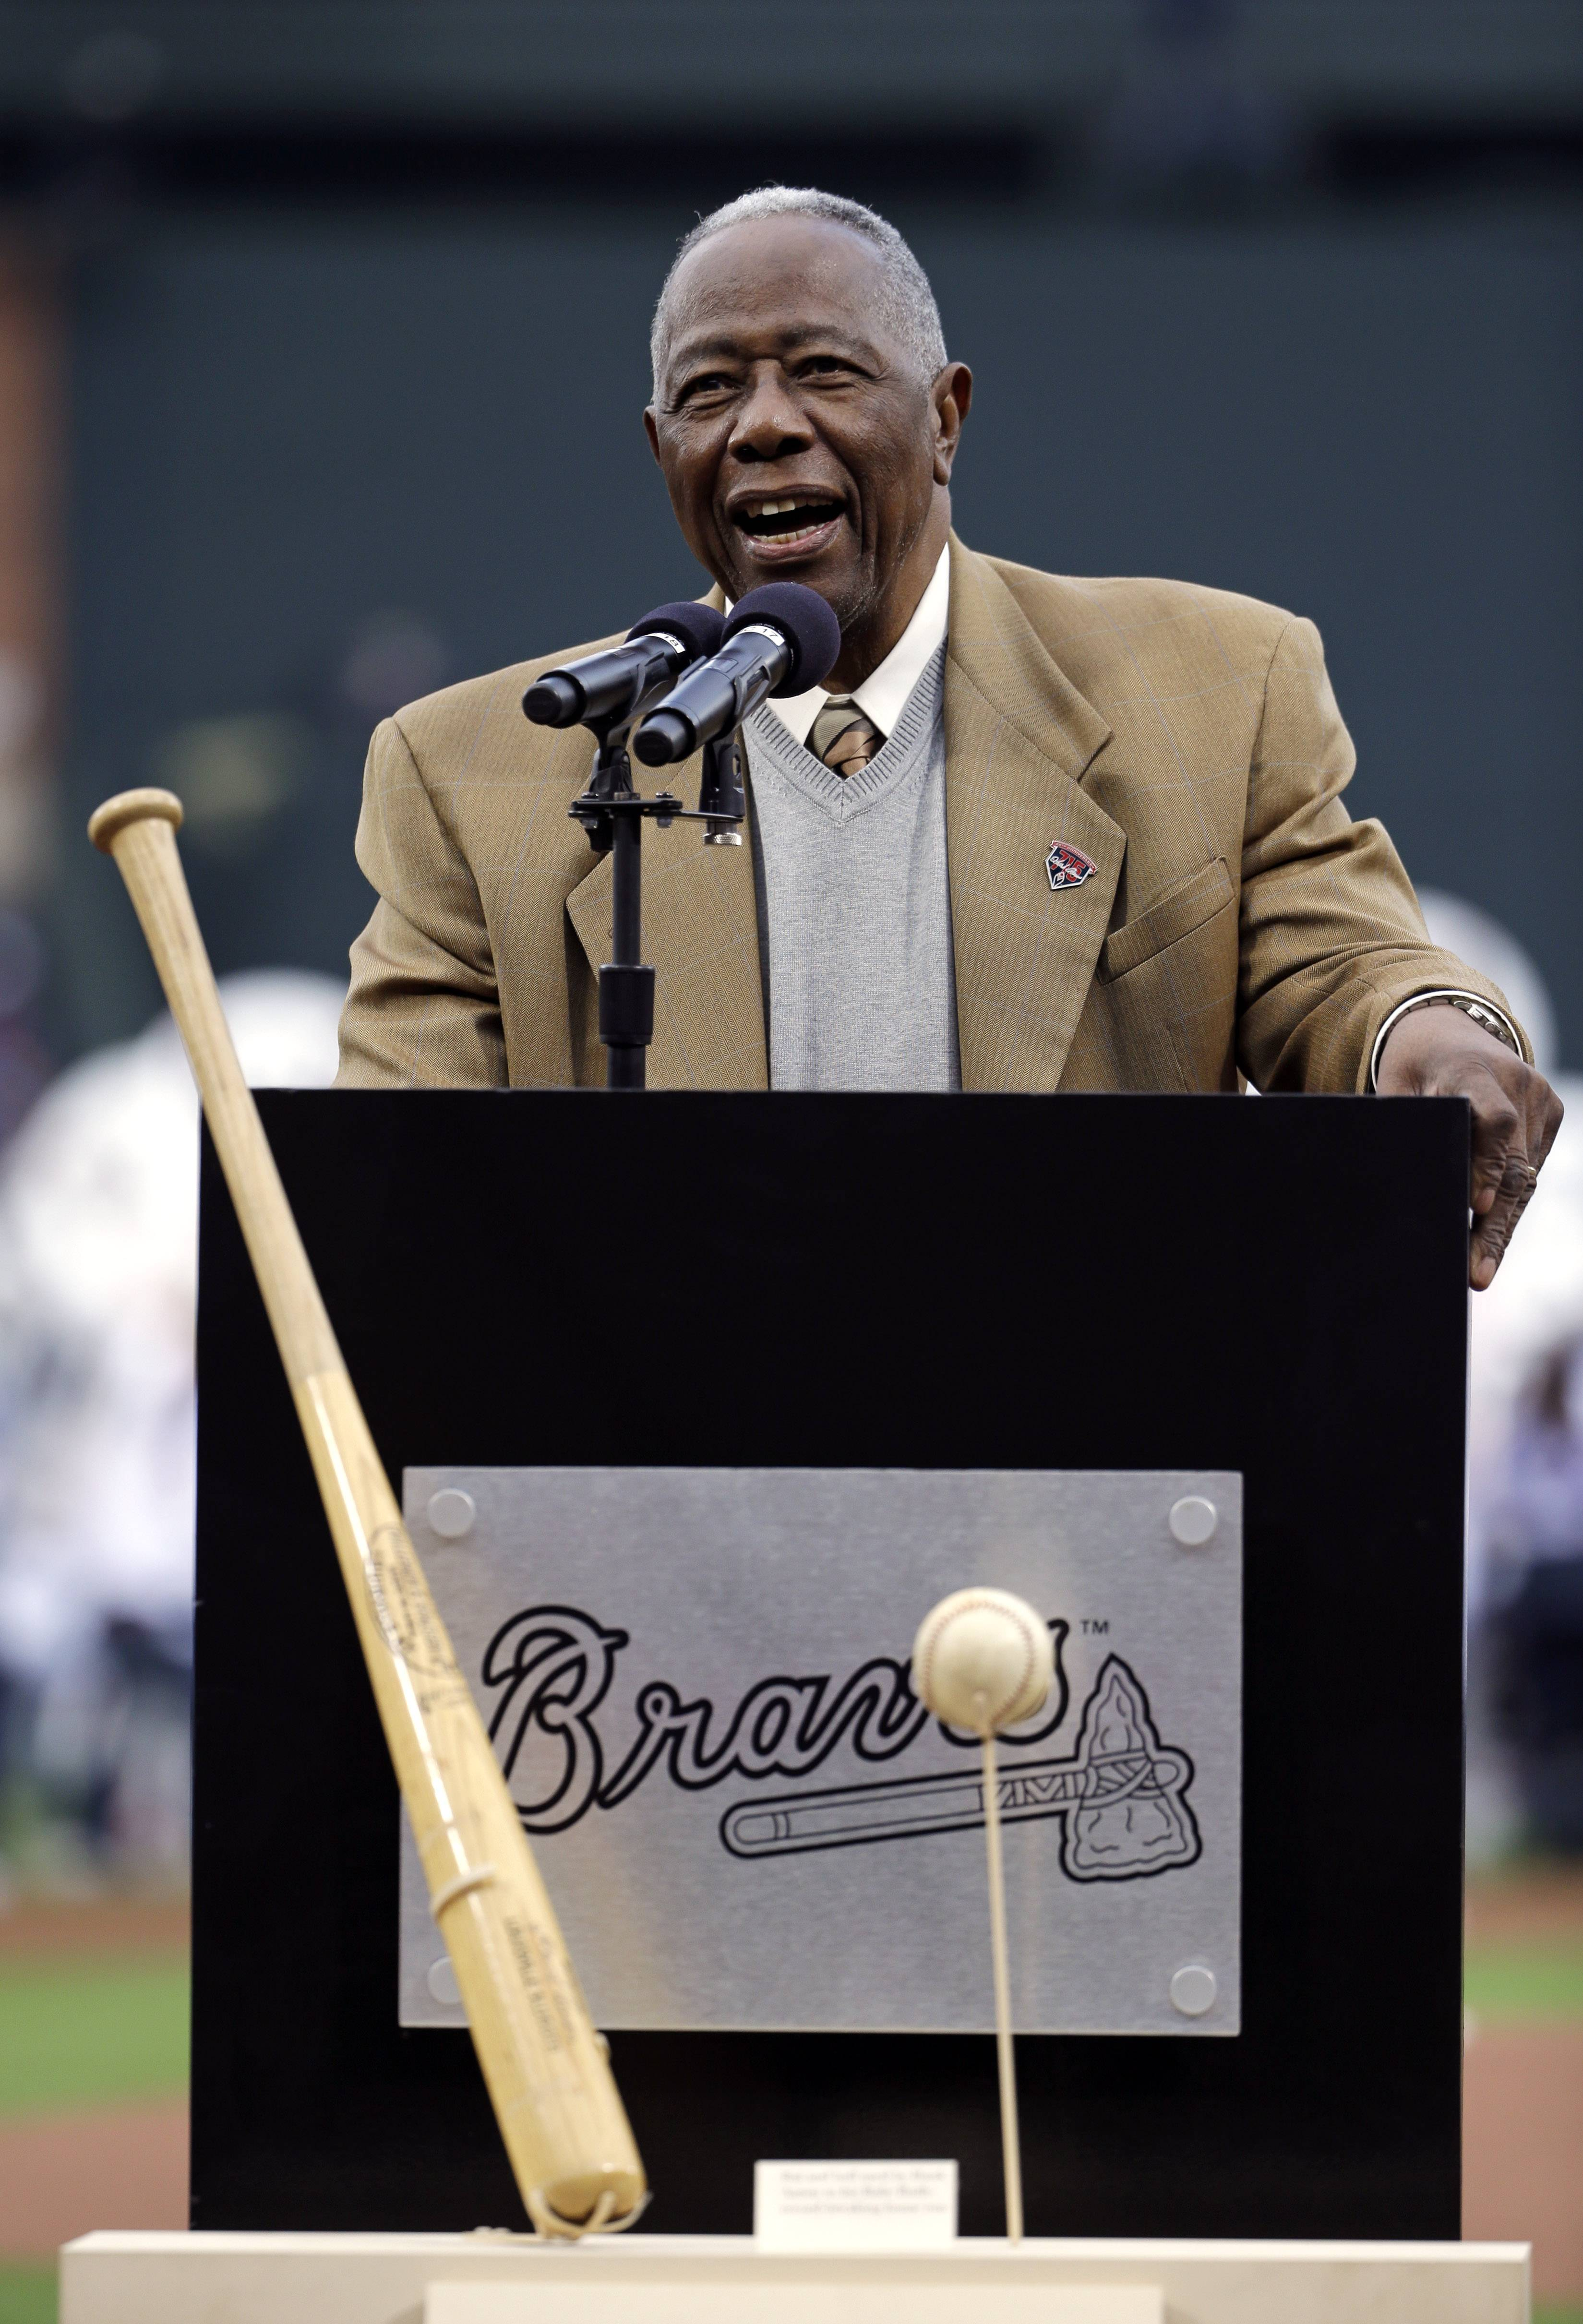 Hank Aaron speaks during a ceremony celebrating the 40th anniversary of his 715th home run as the actual bat and ball from the hit stand on display before the start of a baseball game between the Atlanta Braves and the New York Mets on April 8 in Atlanta.